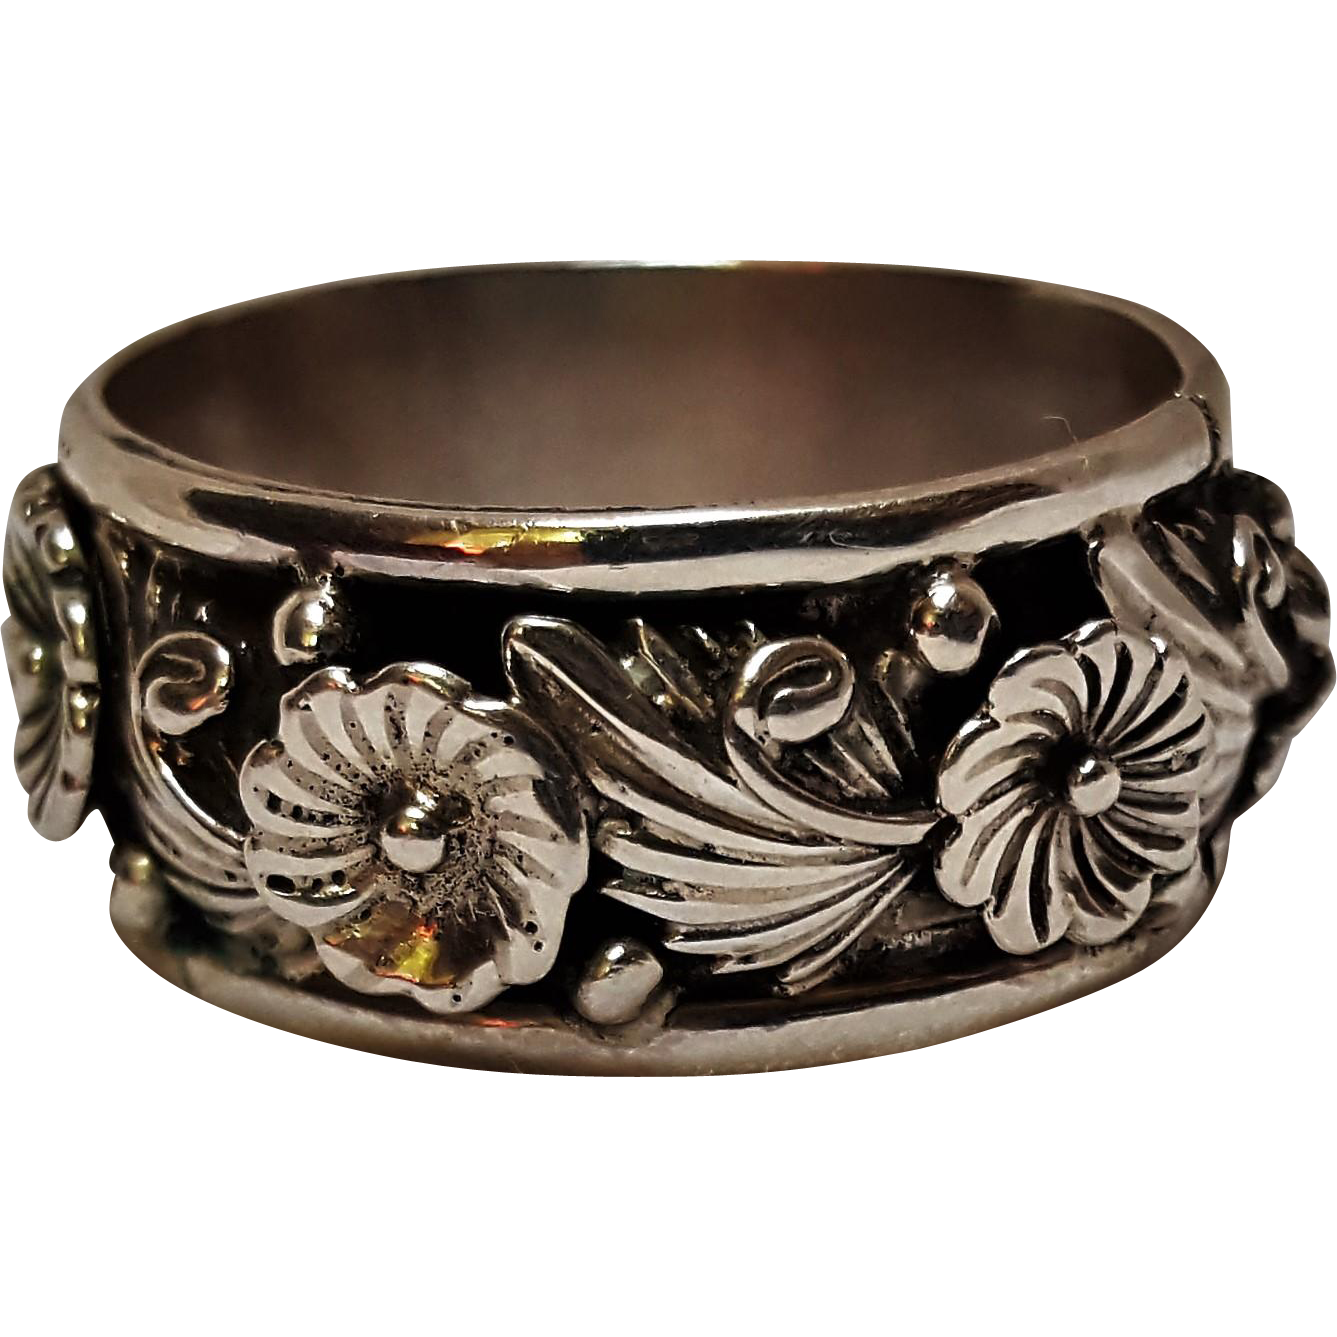 Frank David sterling silver Navajo ring flower blossom band